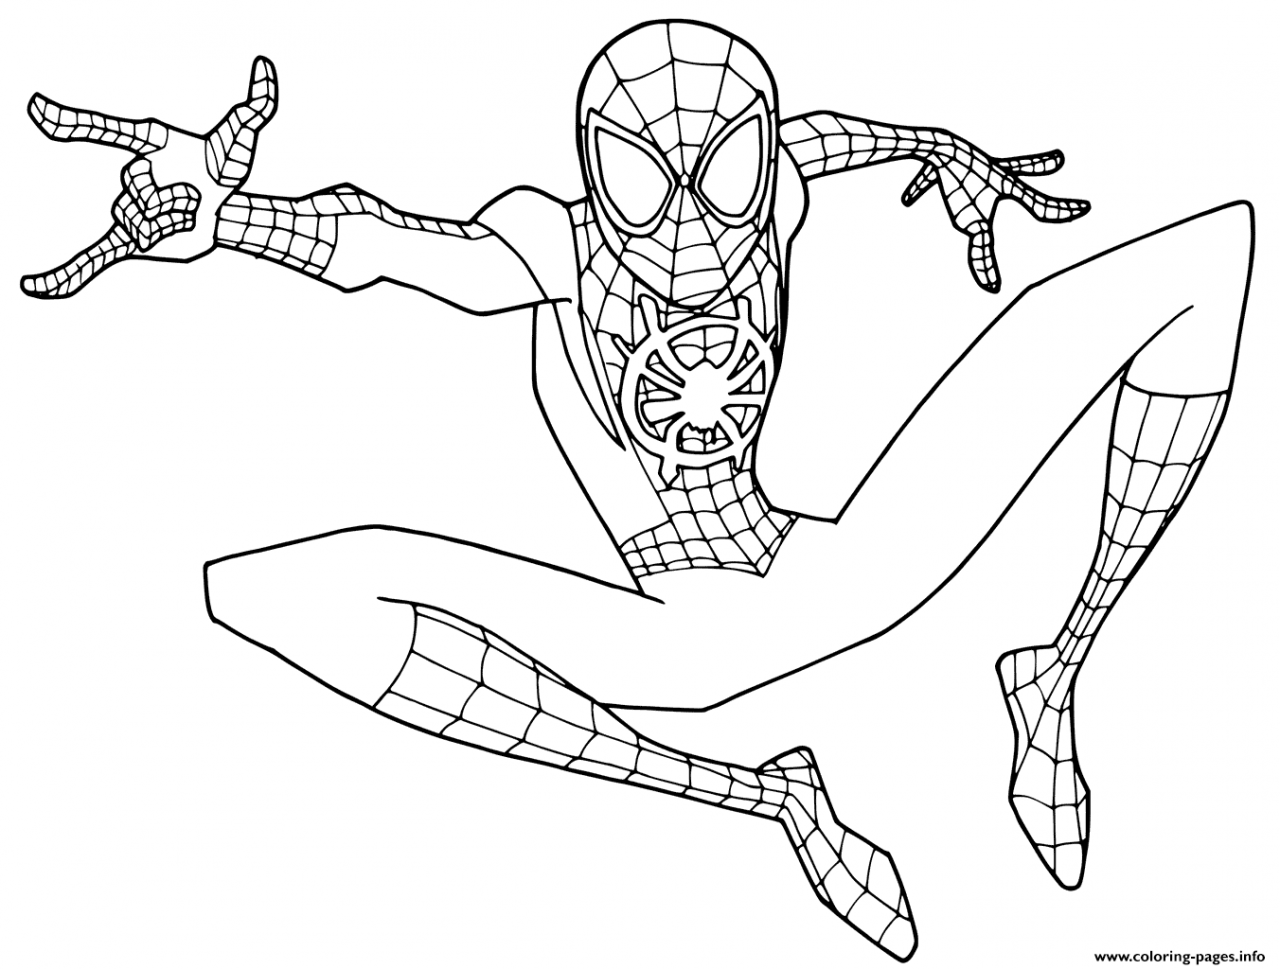 gwen stacy spiderman coloring pages spiderman fighting green goblin coloring pages spiderman gwen stacy pages coloring